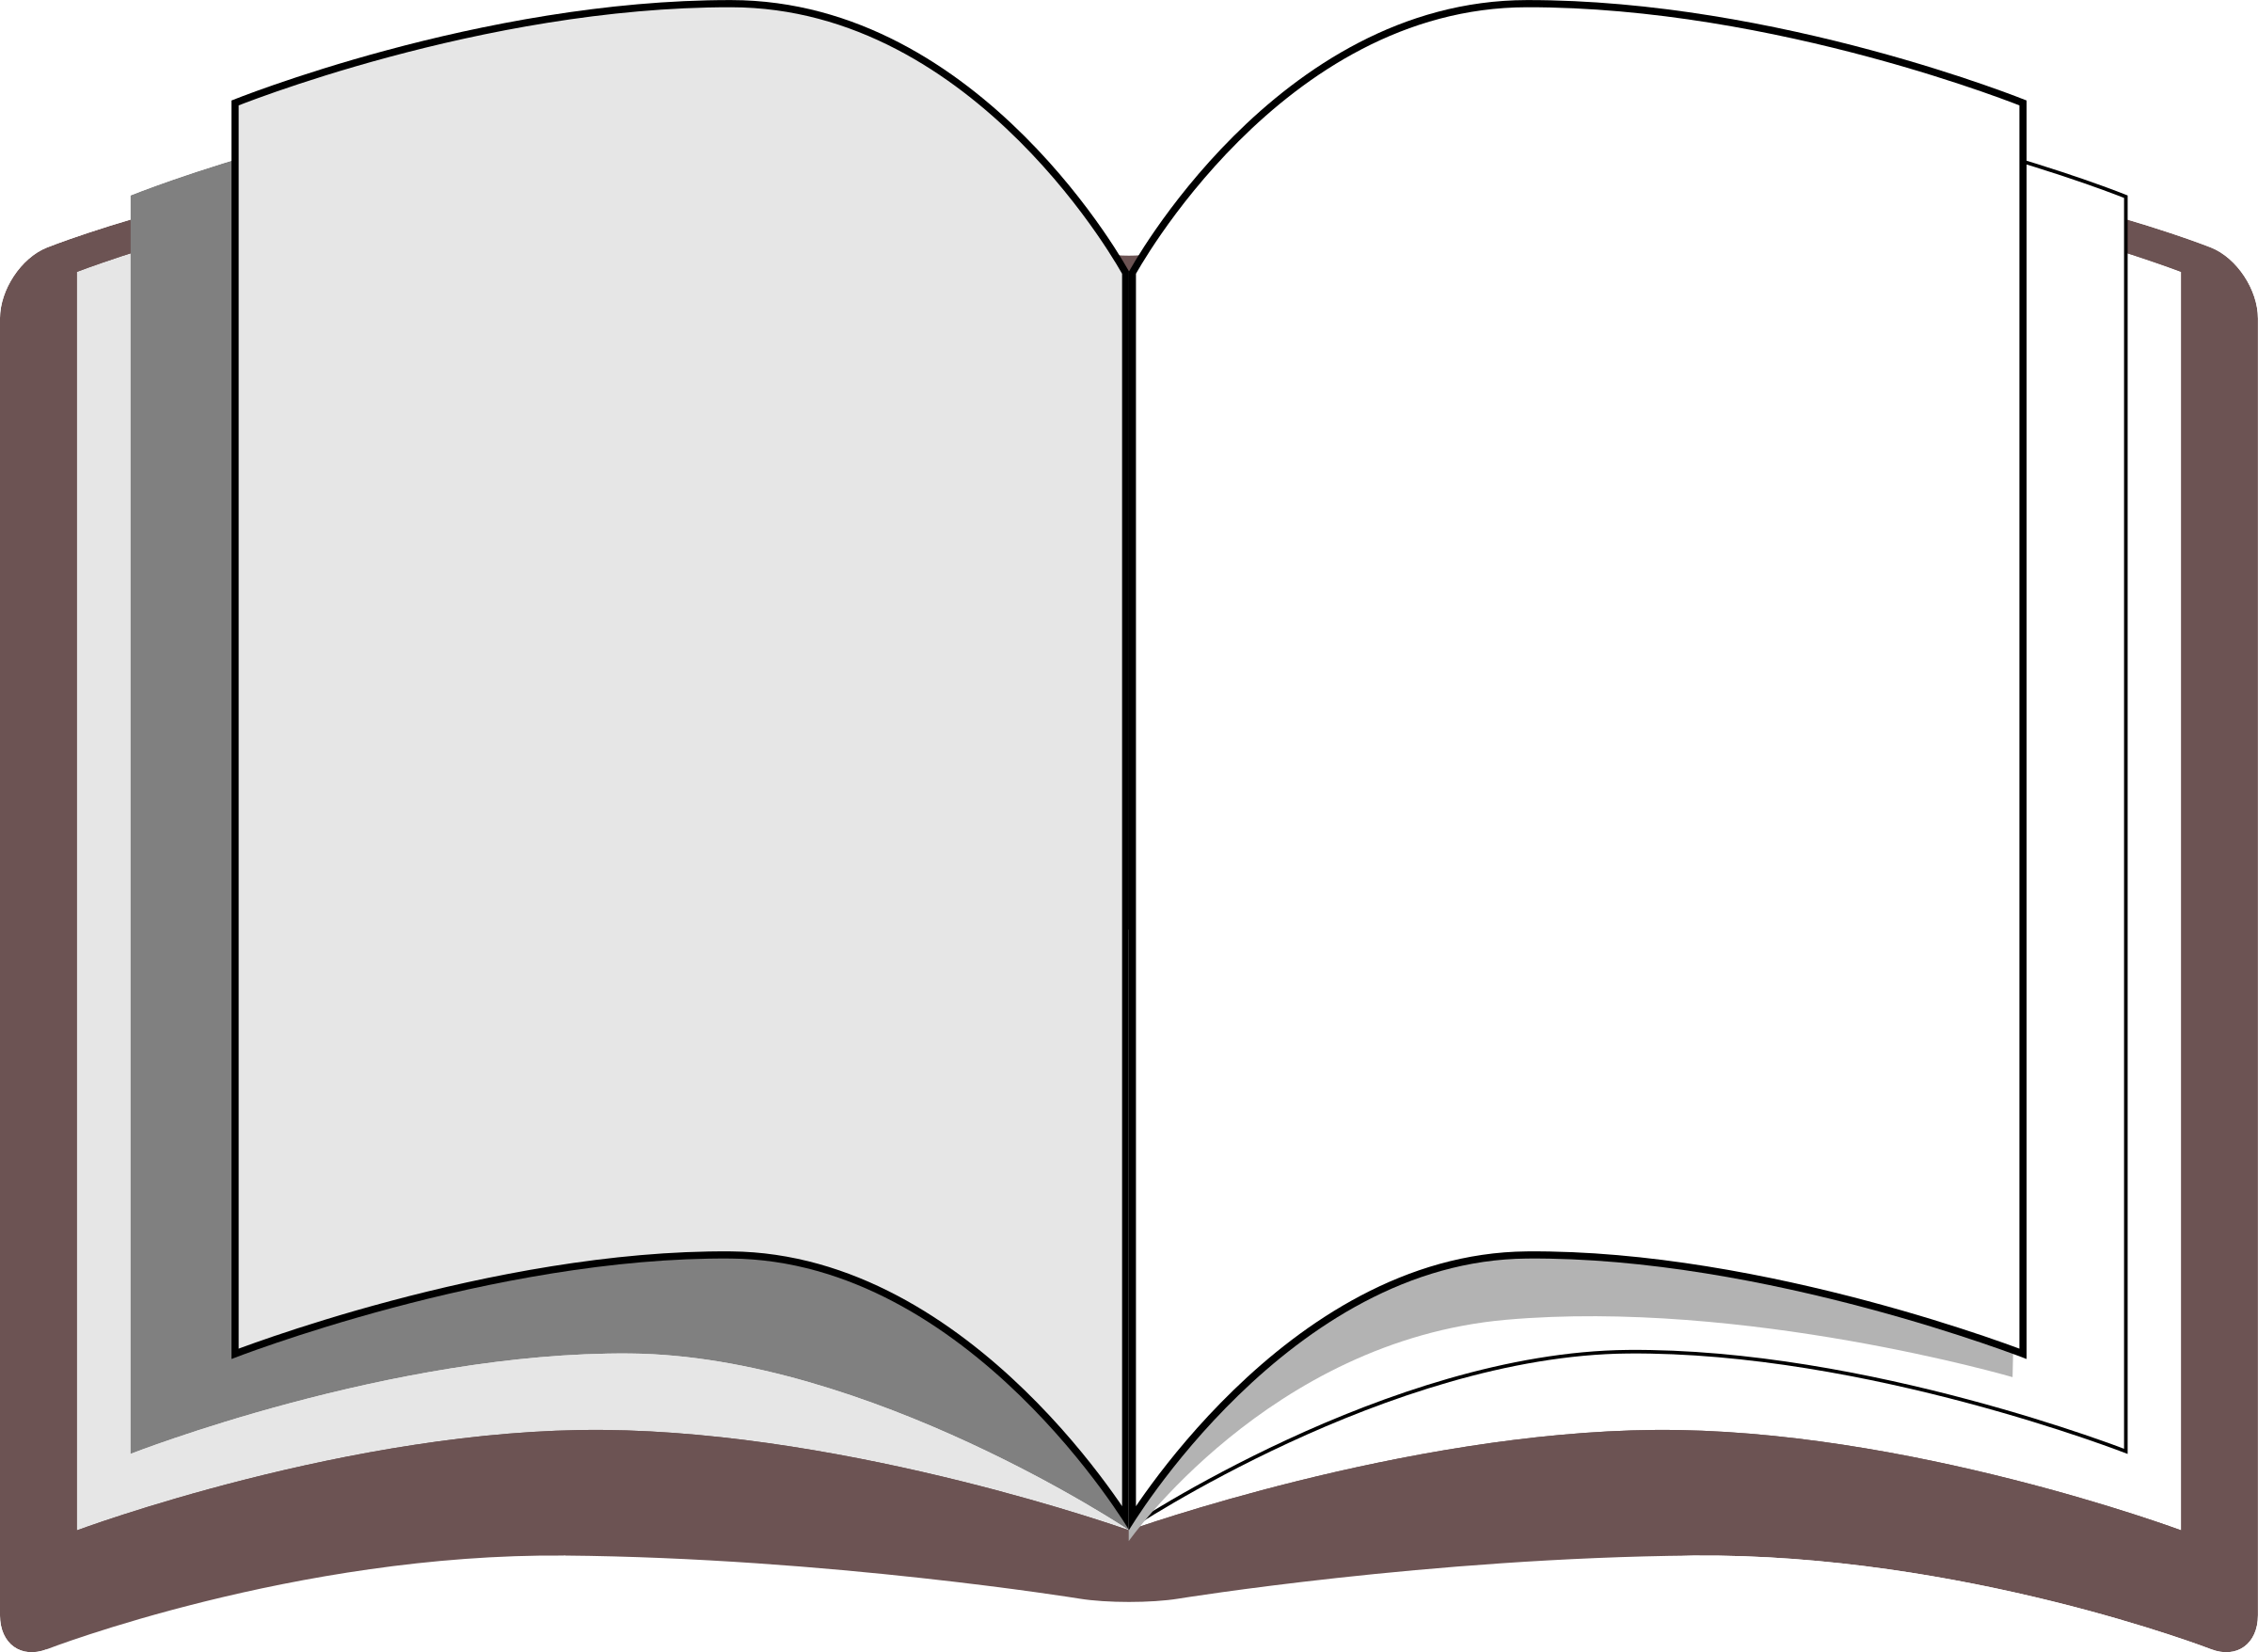 Book clipart open book. Big image png